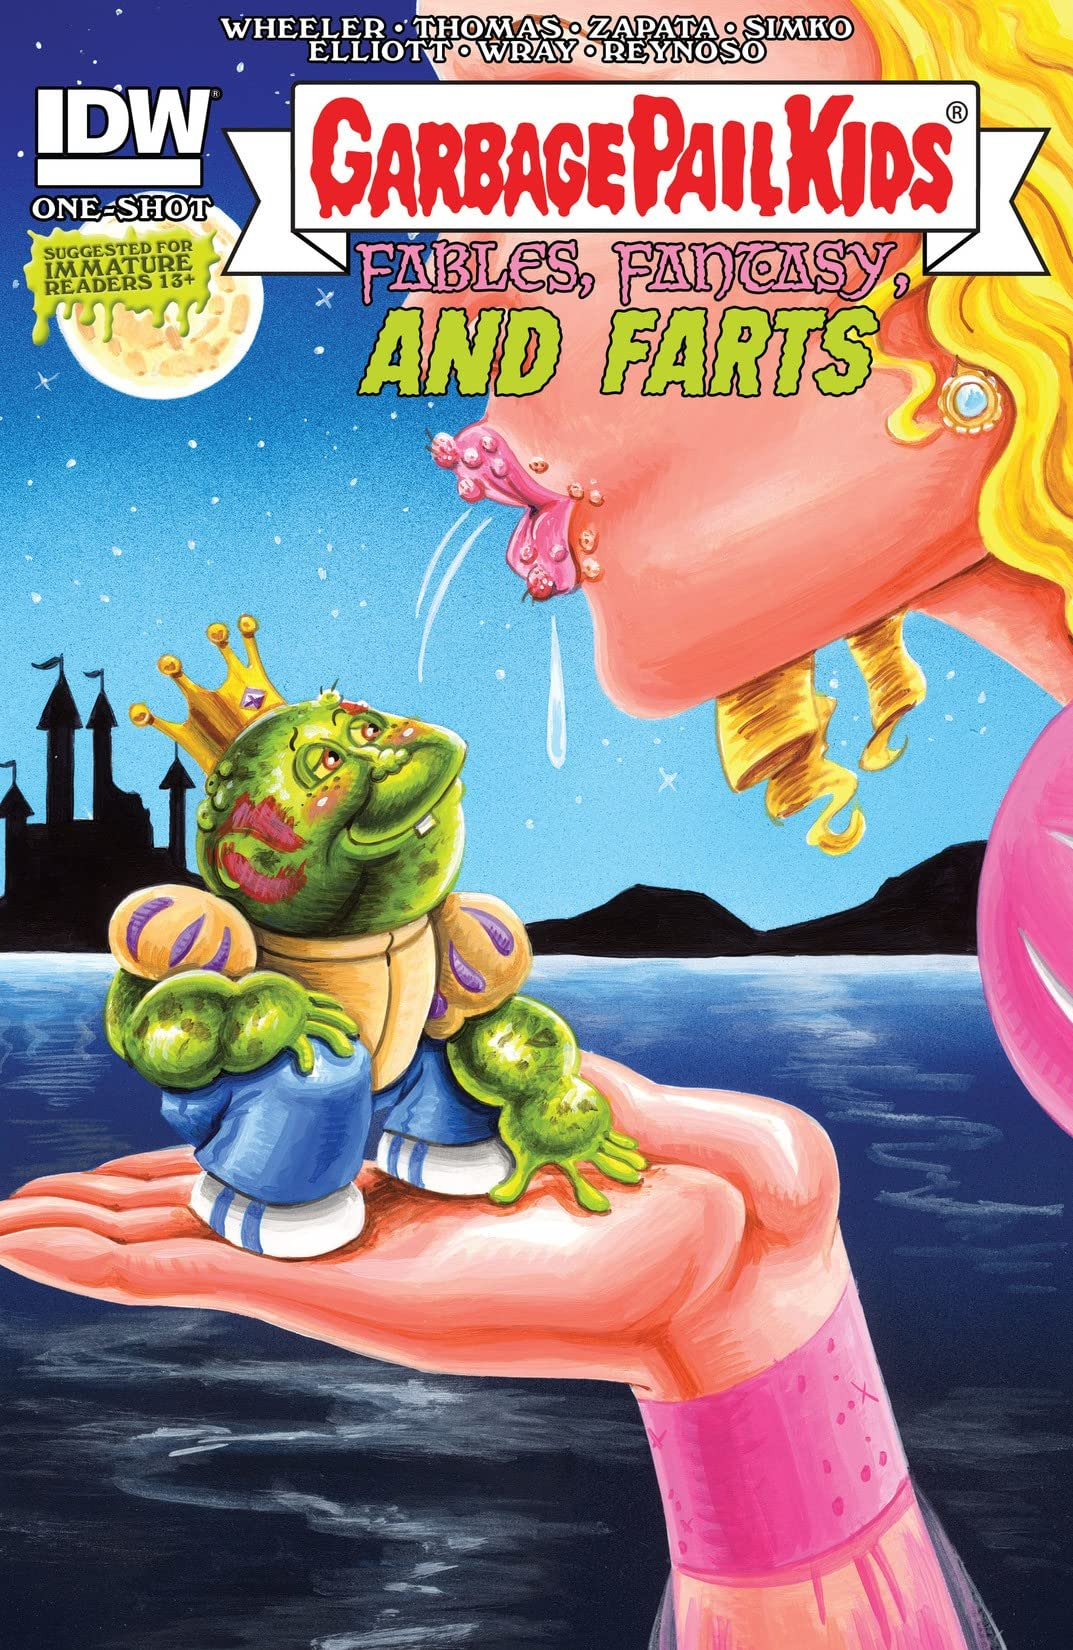 Garbage Pail Kids #3: Fables, Fantasy, and Farts